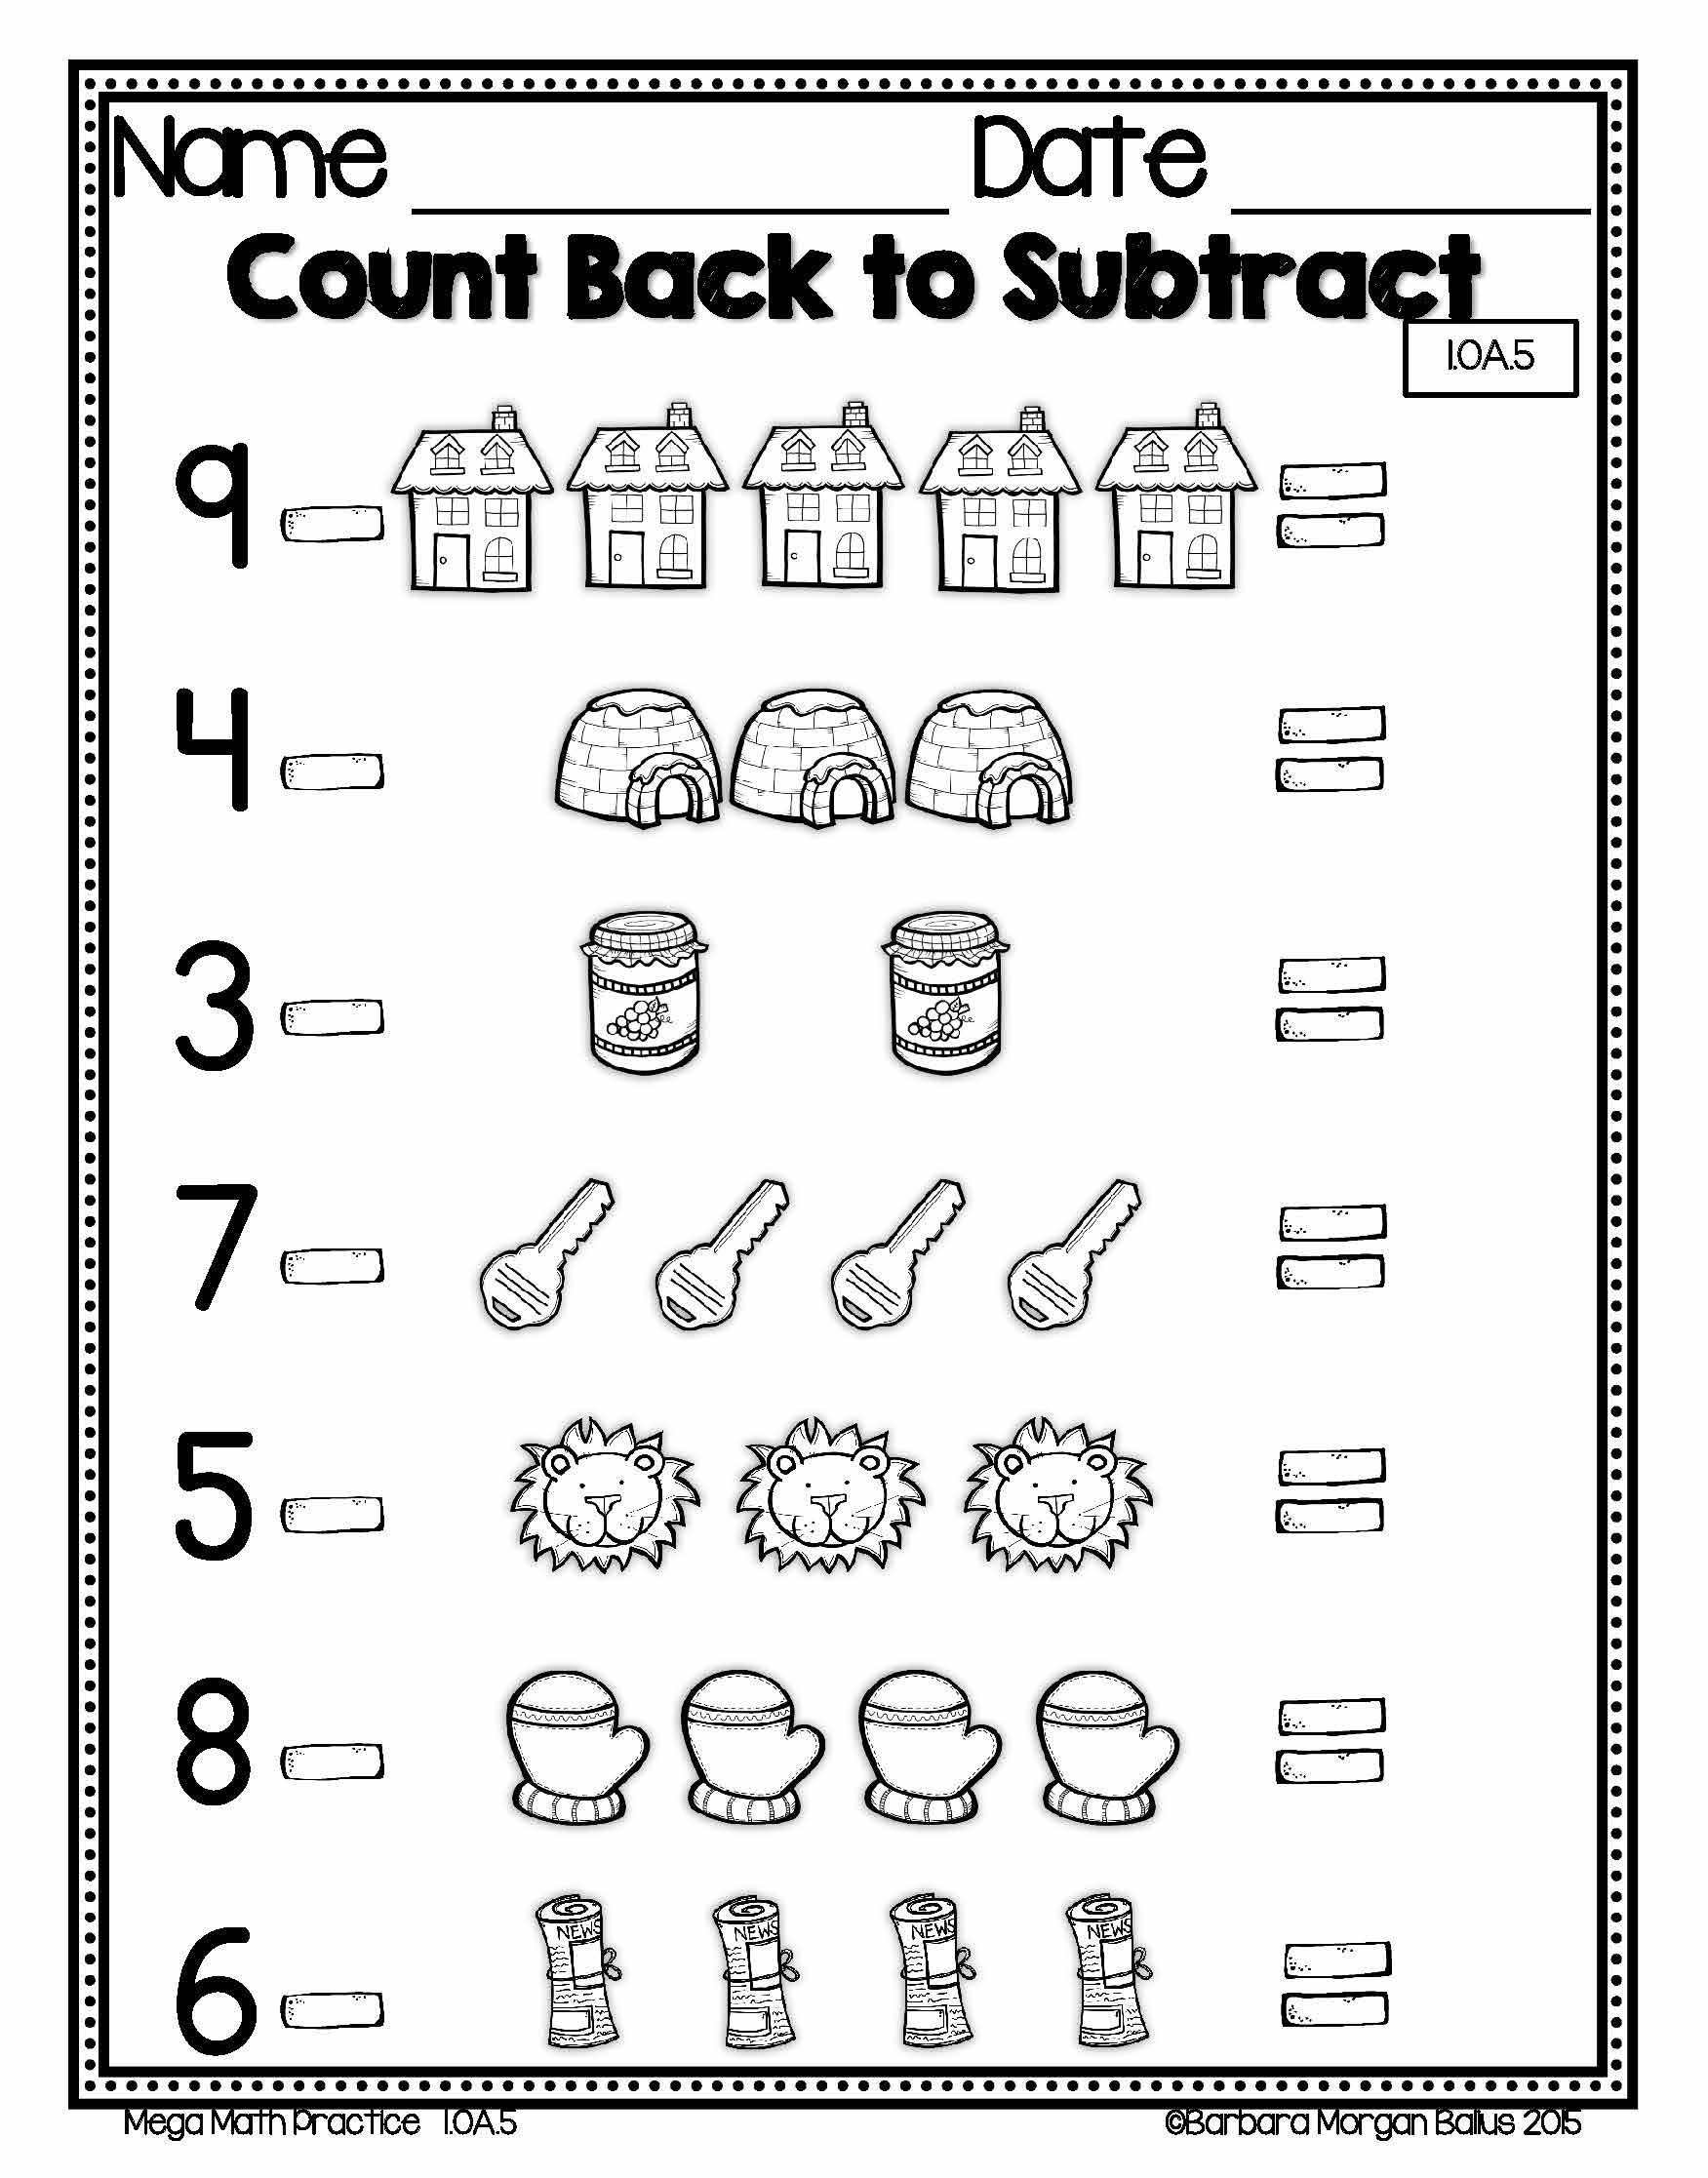 Counting Backwards Worksheet Year 1